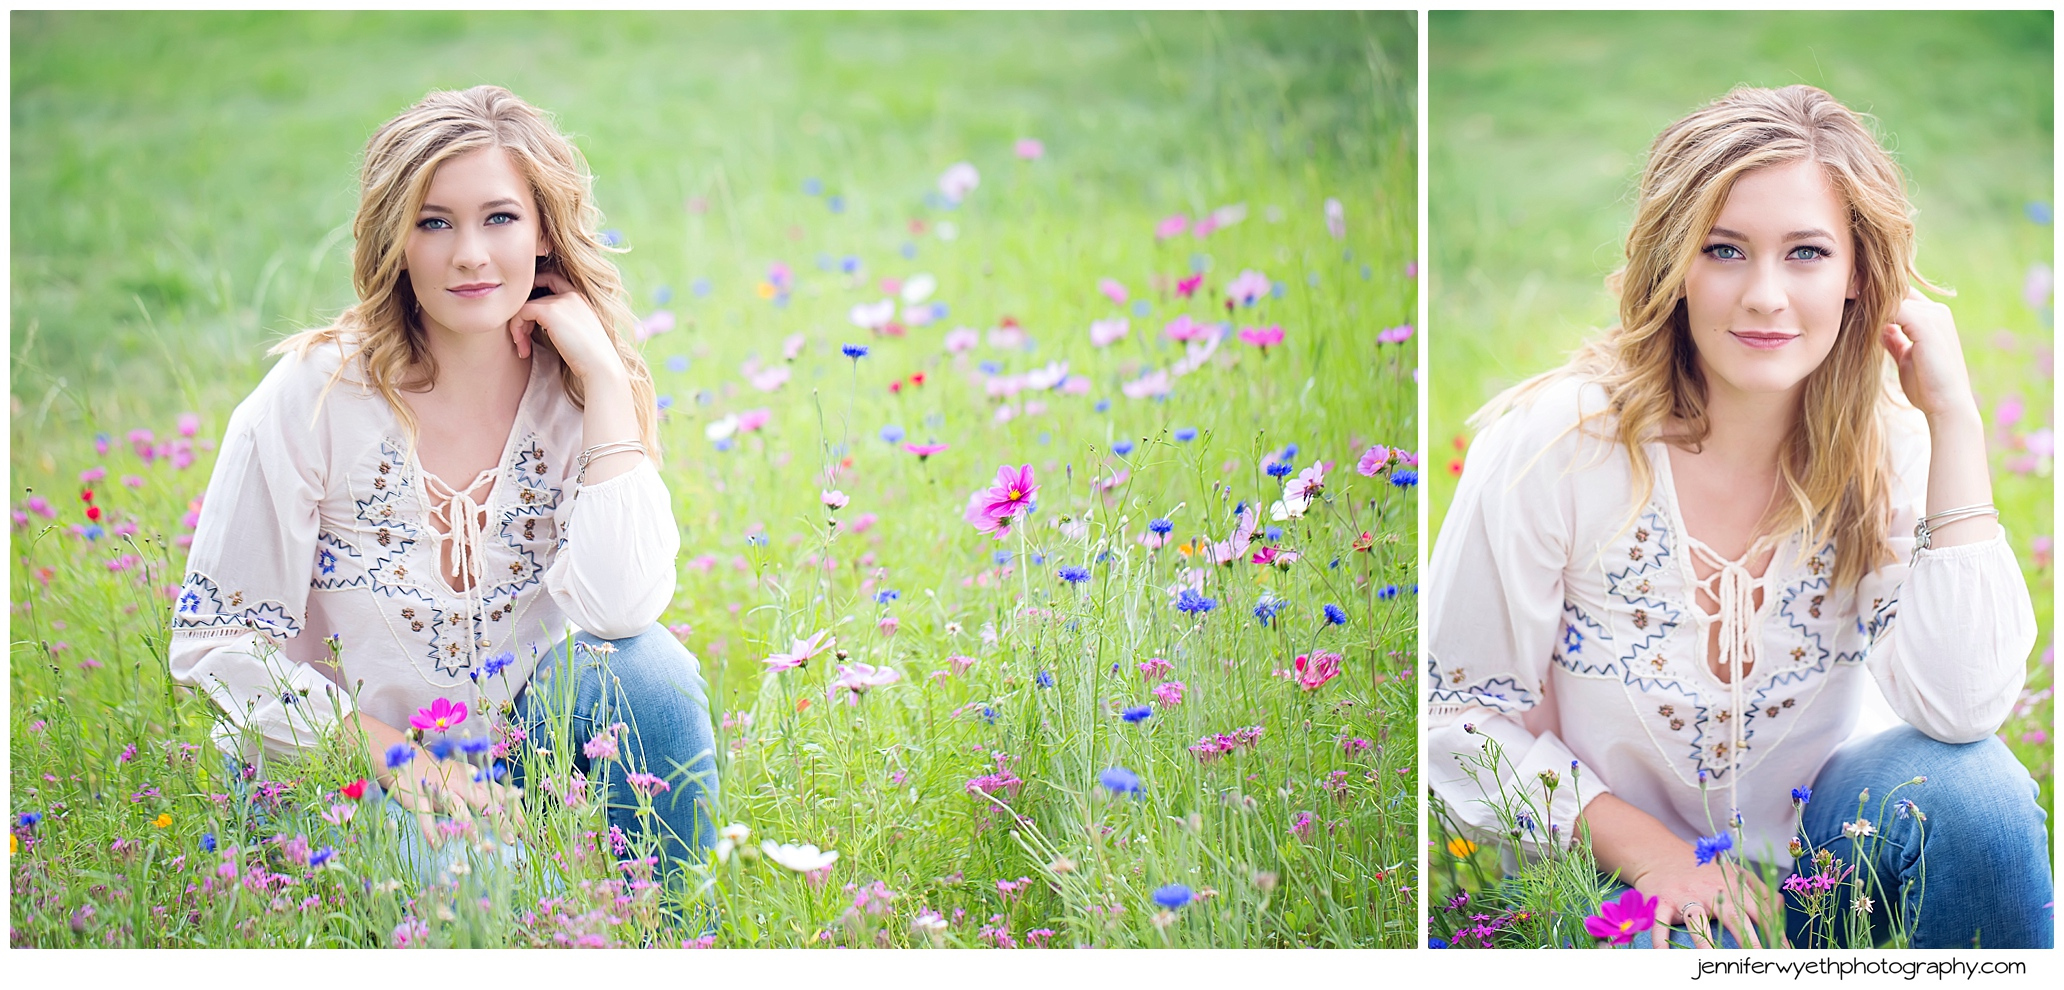 Jennifer-Wyeth-photography-senior-pictures-colorado-springs-photographer_0180.jpg